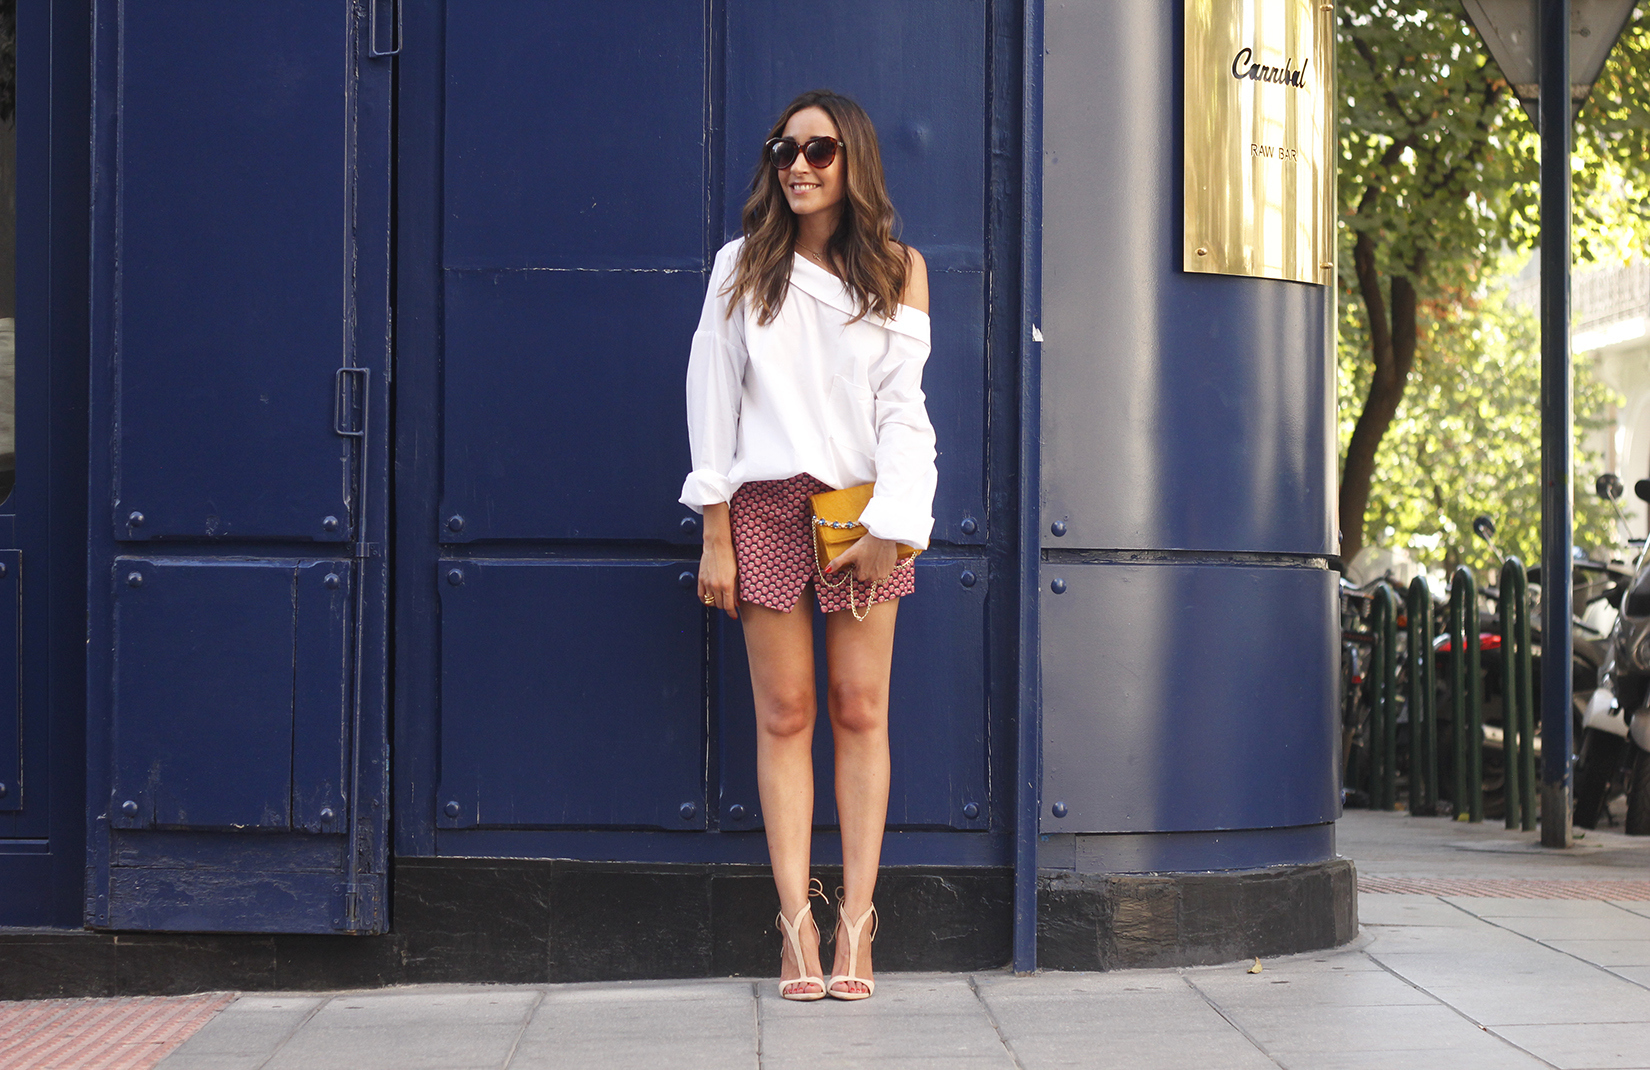 White shirt with printed shorts uterquë bag summer outfit style heels04